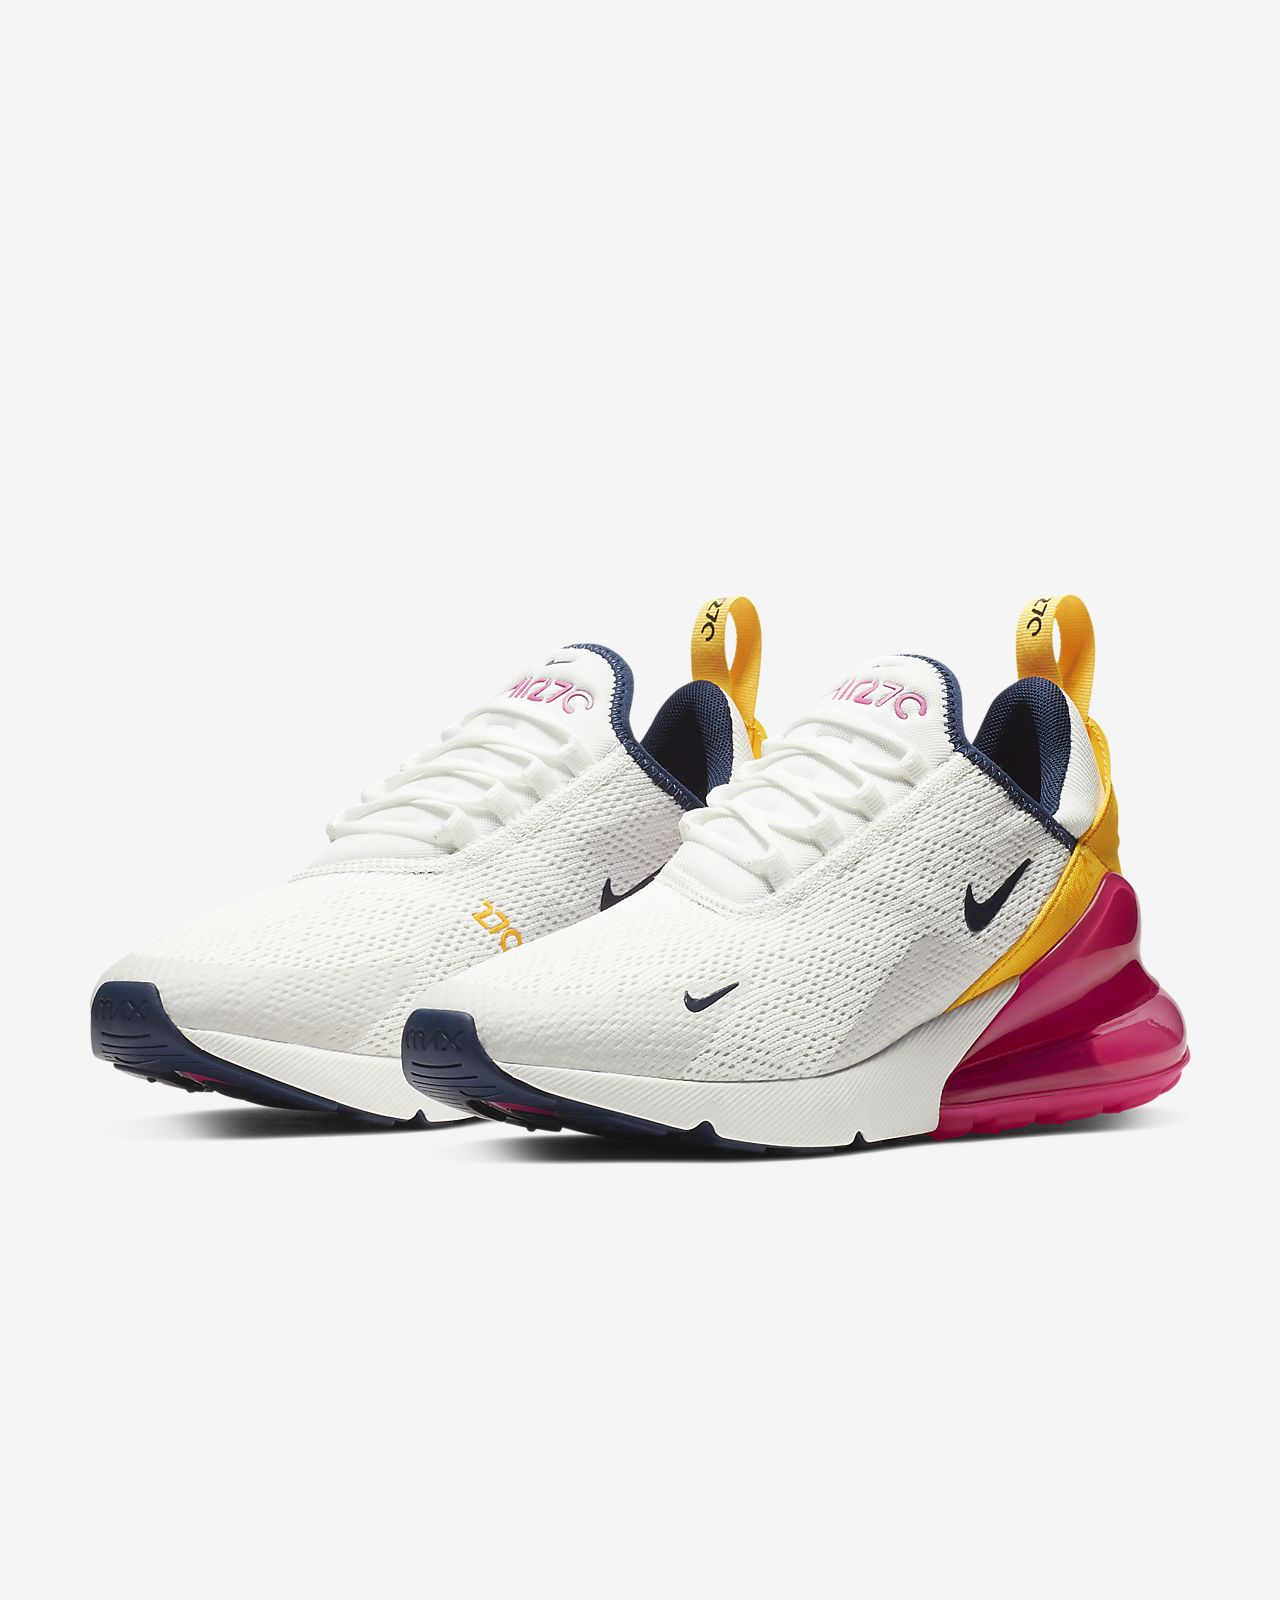 new products df4d7 108b9 ... Nike Air Max 270 Premium Women s Shoe